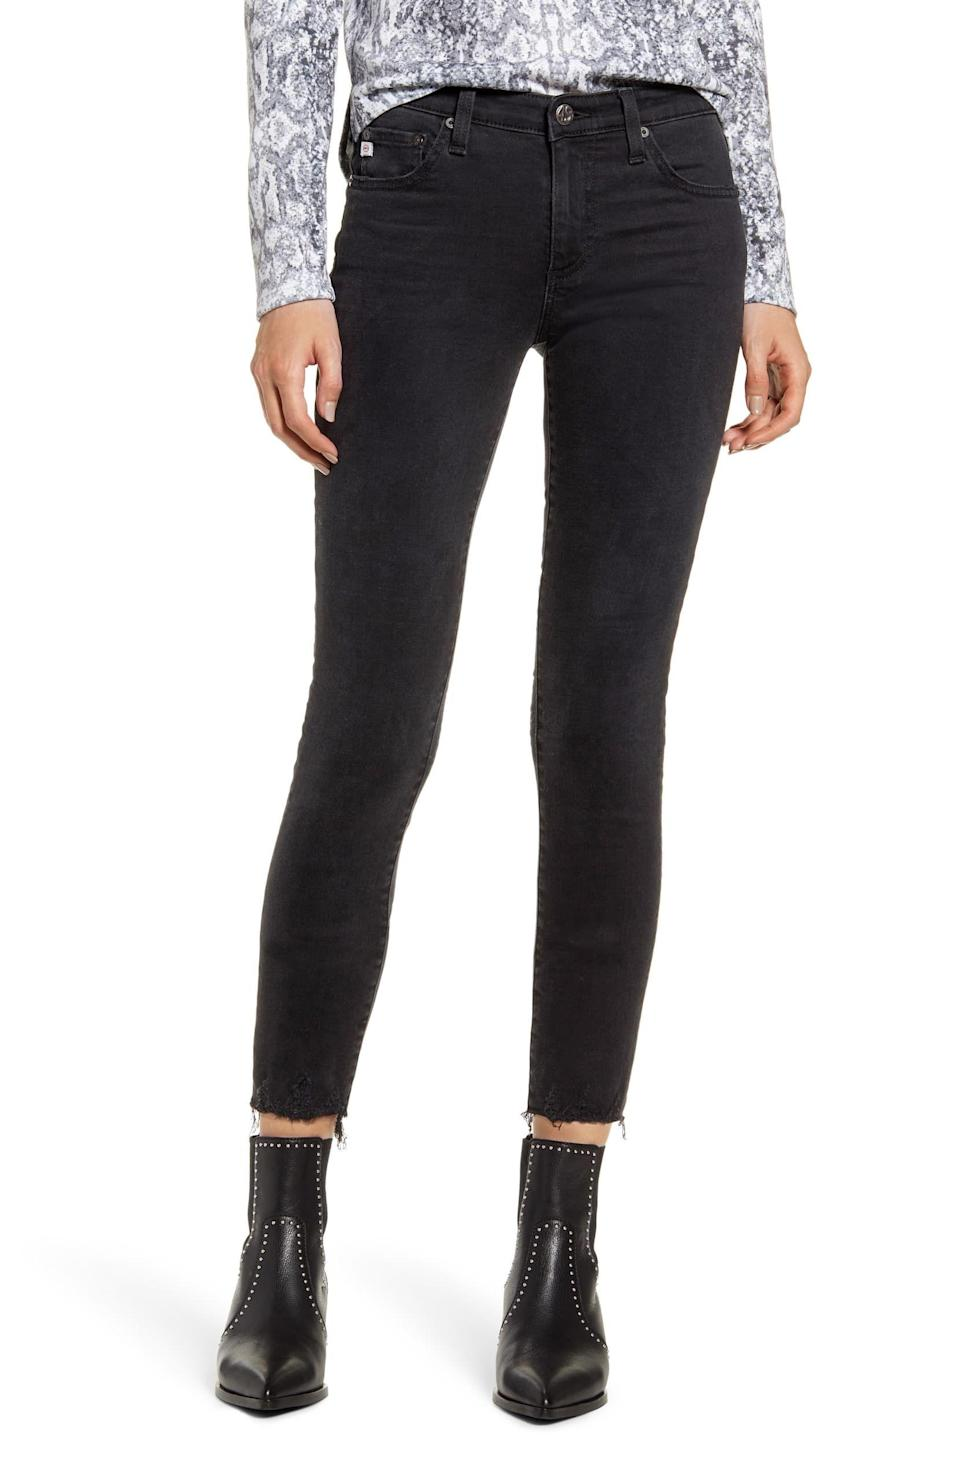 """<p><strong>AG</strong></p><p>nordstrom.com</p><p><strong>$135.00</strong></p><p><a href=""""https://go.redirectingat.com?id=74968X1596630&url=https%3A%2F%2Fshop.nordstrom.com%2Fs%2Fag-the-legging-ankle-super-skinny-jeans-2-years-black-essence%2F5272794&sref=http%3A%2F%2Fwww.cosmopolitan.com%2Fstyle-beauty%2Ffashion%2Fg30057282%2Fshop-nordstrom-black-friday-cyber-monday-sale-2019%2F"""" rel=""""nofollow noopener"""" target=""""_blank"""" data-ylk=""""slk:Shop Now"""" class=""""link rapid-noclick-resp"""">Shop Now</a></p><p>Speaking of very skinny jeans, this edgy AG pair feel like leggings, but look like jeans. *Adds to cart ASAP.* </p>"""